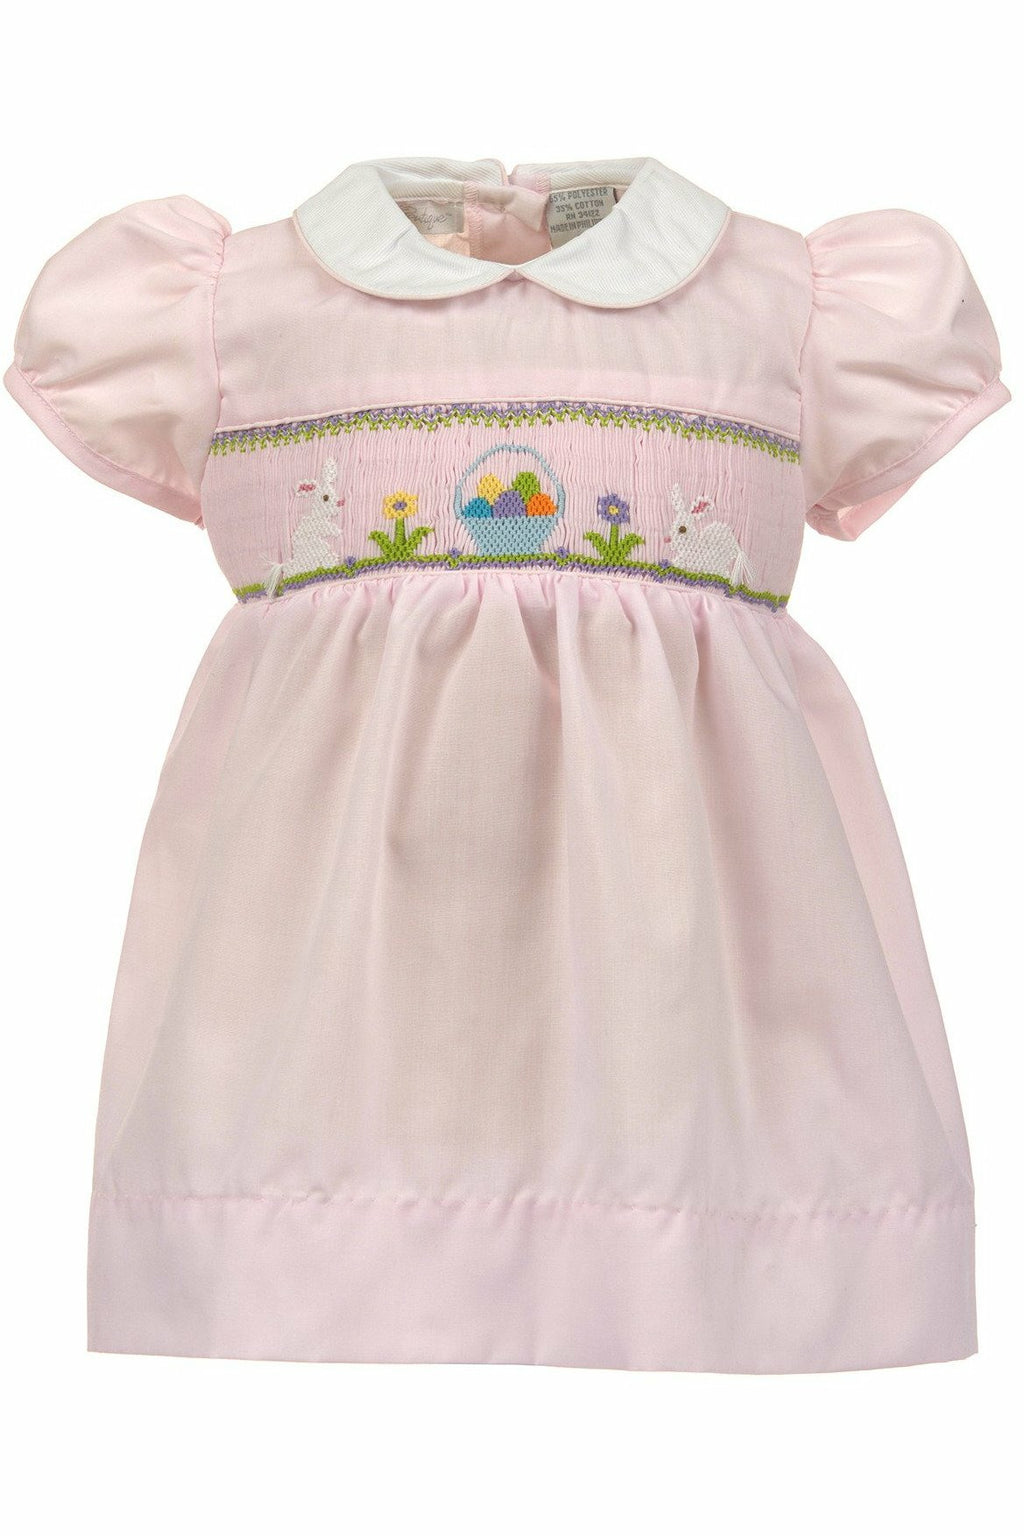 Carriage Boutique Baby Girls Easter Dress - Hand Smocked Easter Bunnies and Eggs